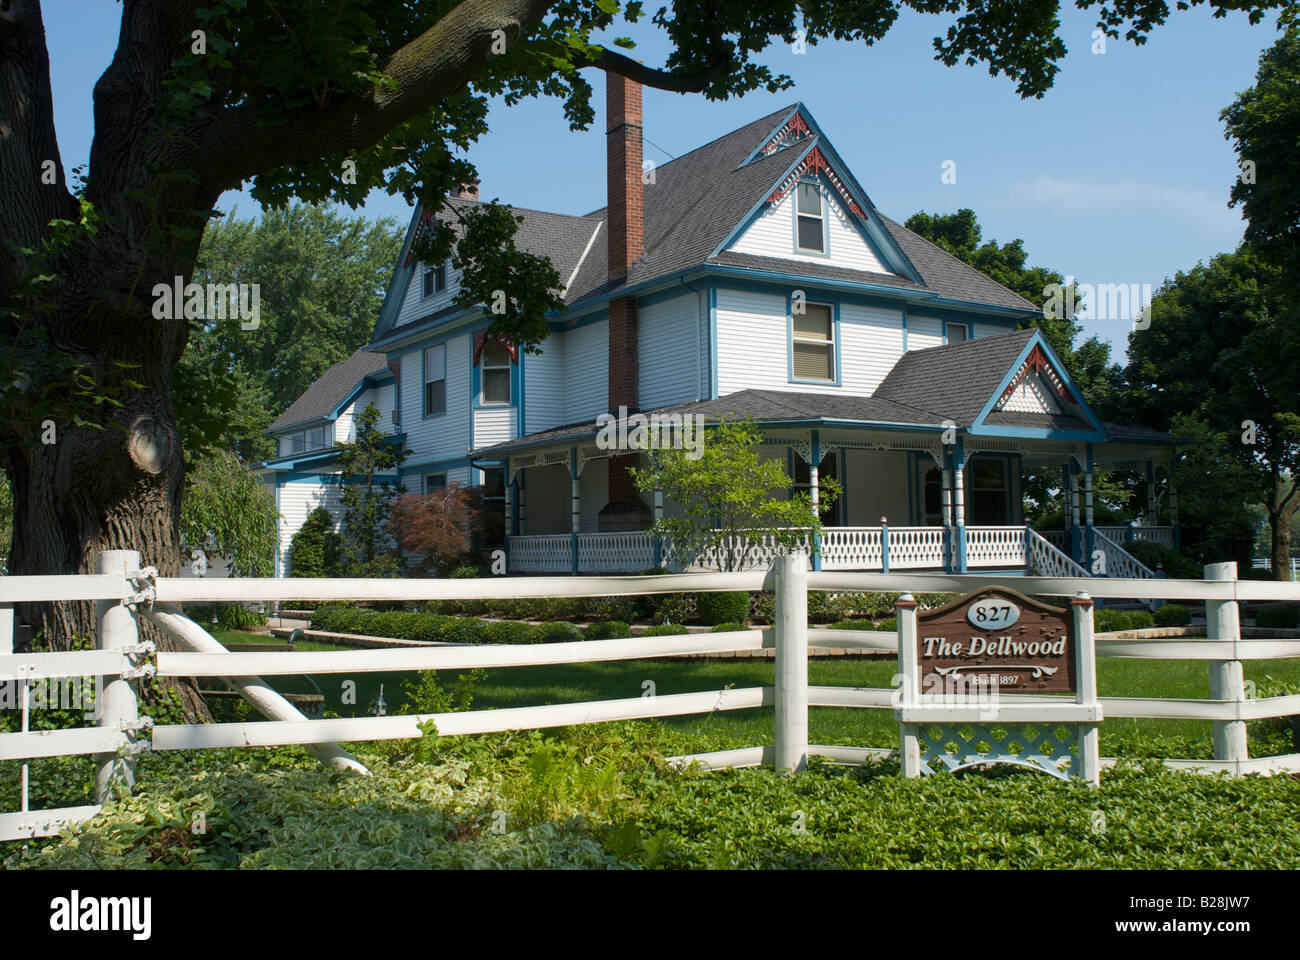 The Dellwood victorian home in Put in Bay Ohio - Stock Image